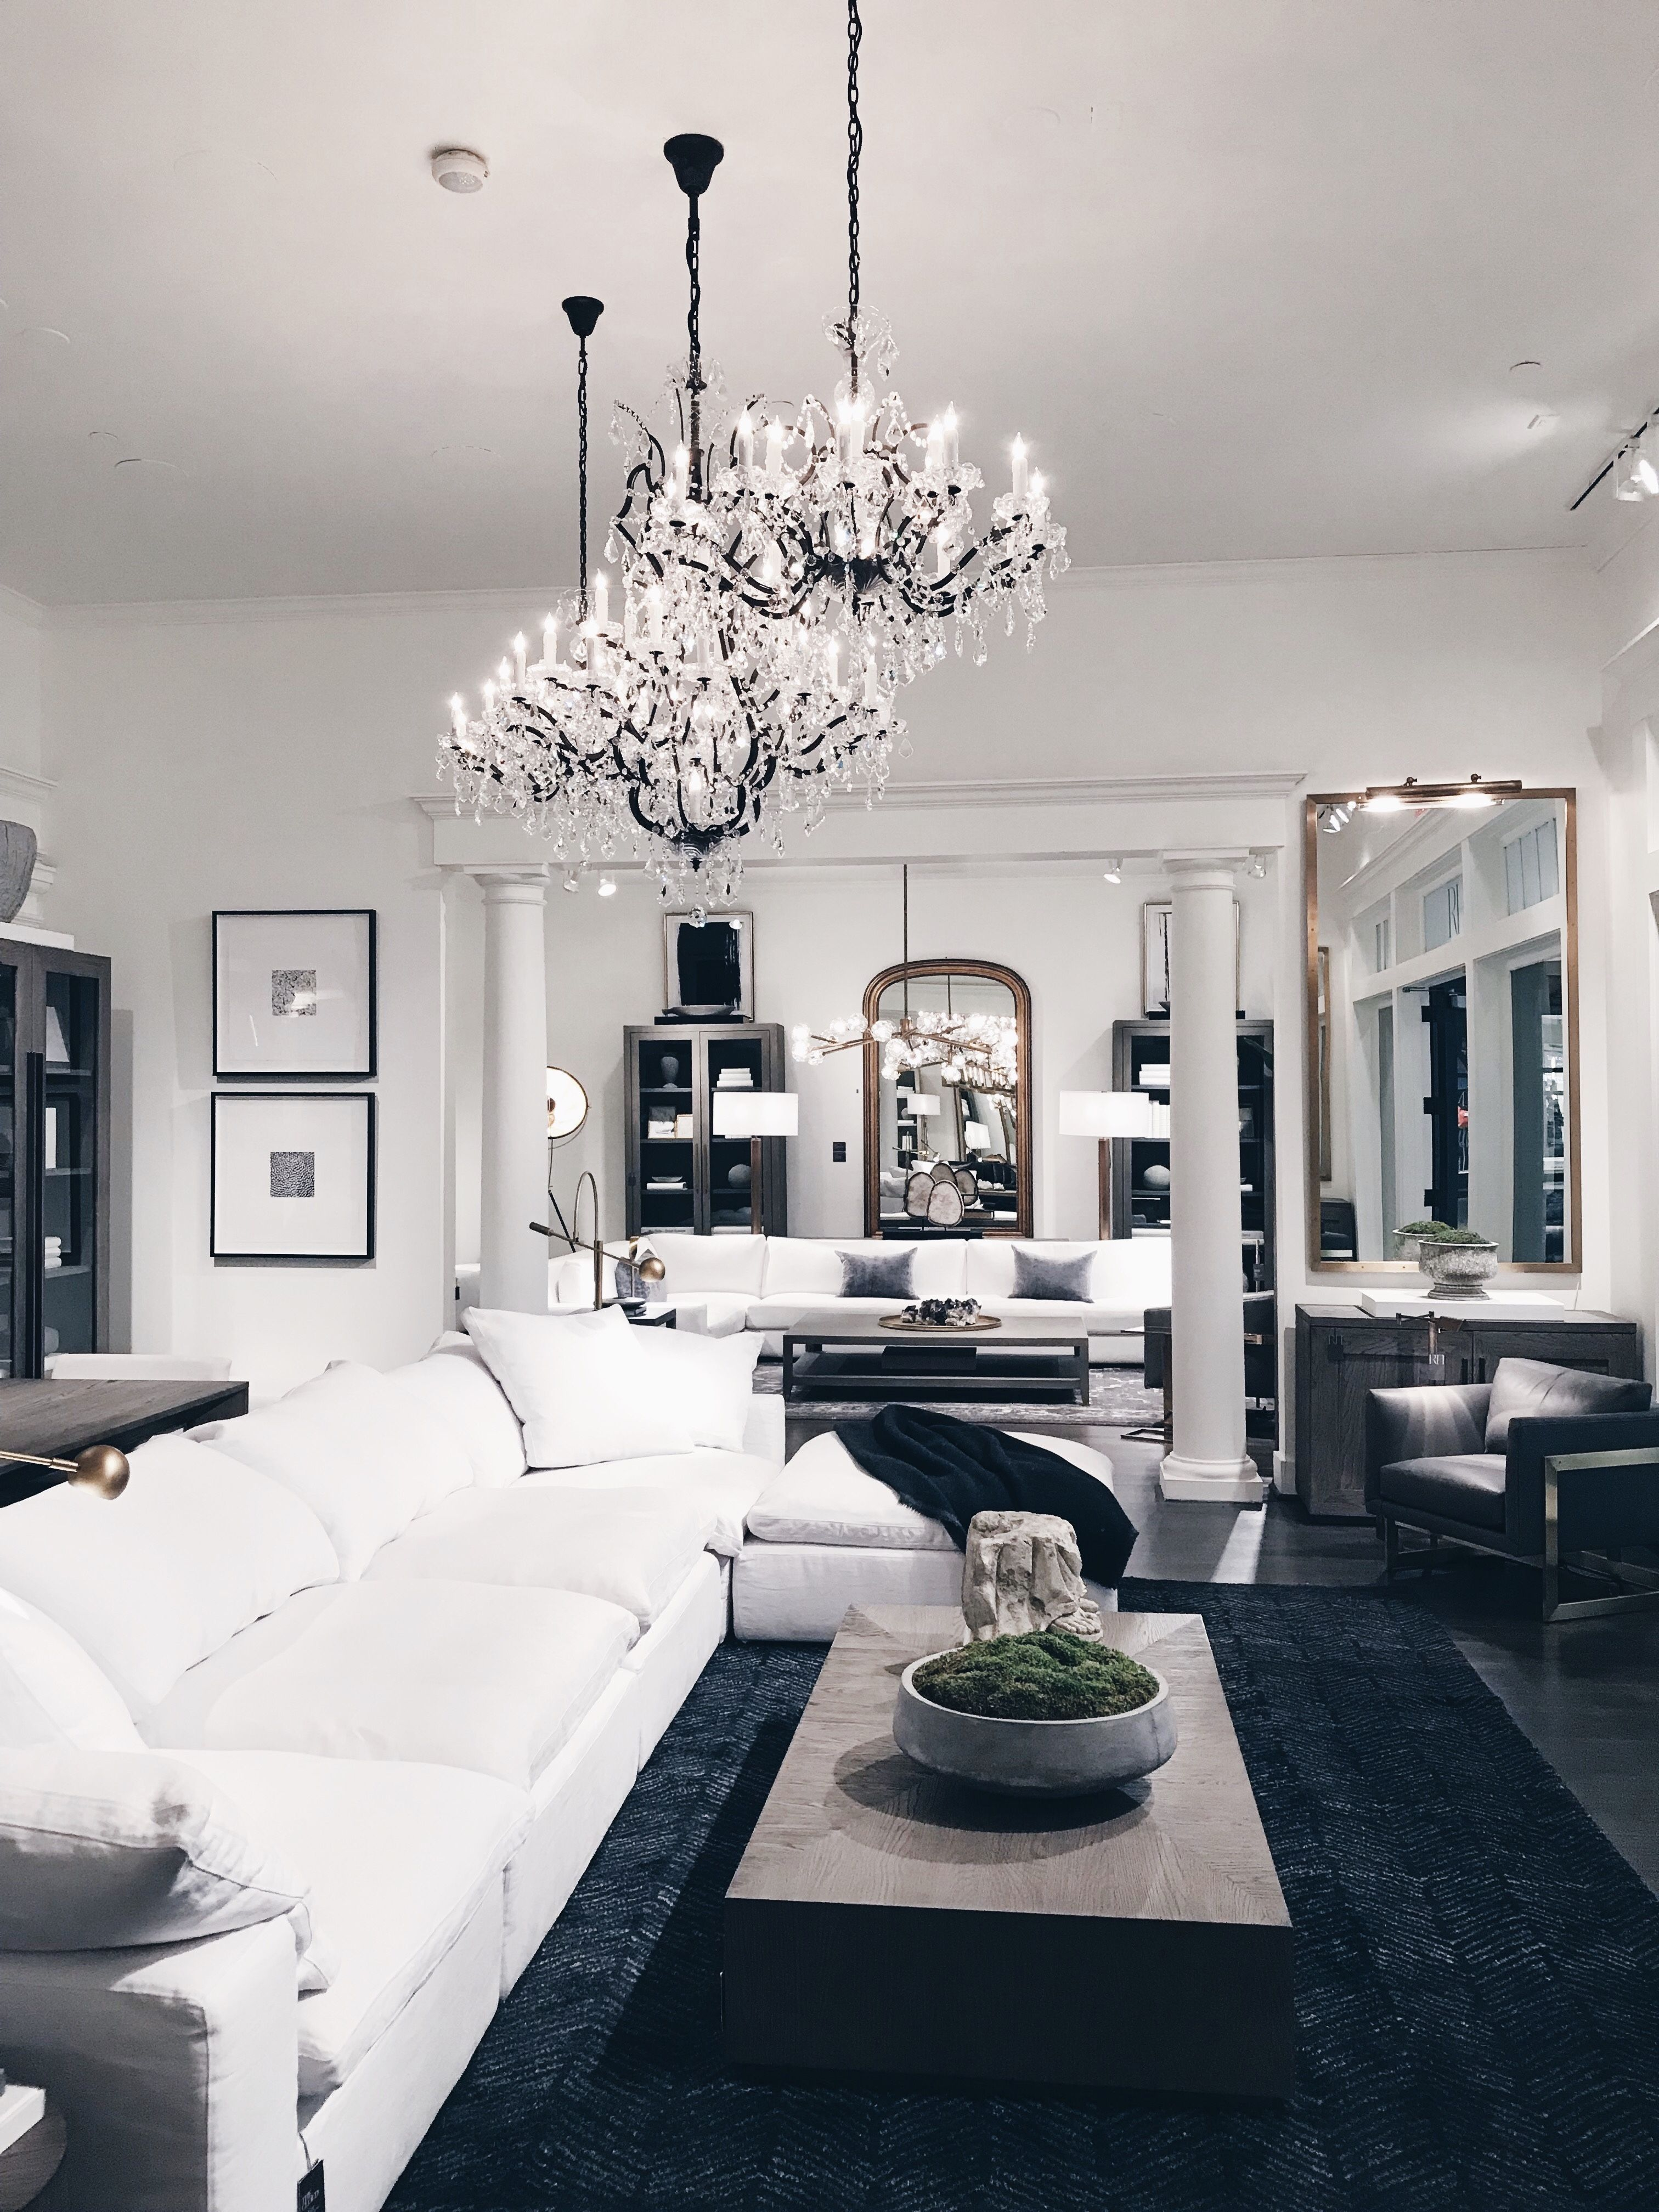 Home decoration allows you to create luxury yet modern interior design projects discover more luxurious also elegance in black white  silver kelly hoppen interiors color rh pinterest